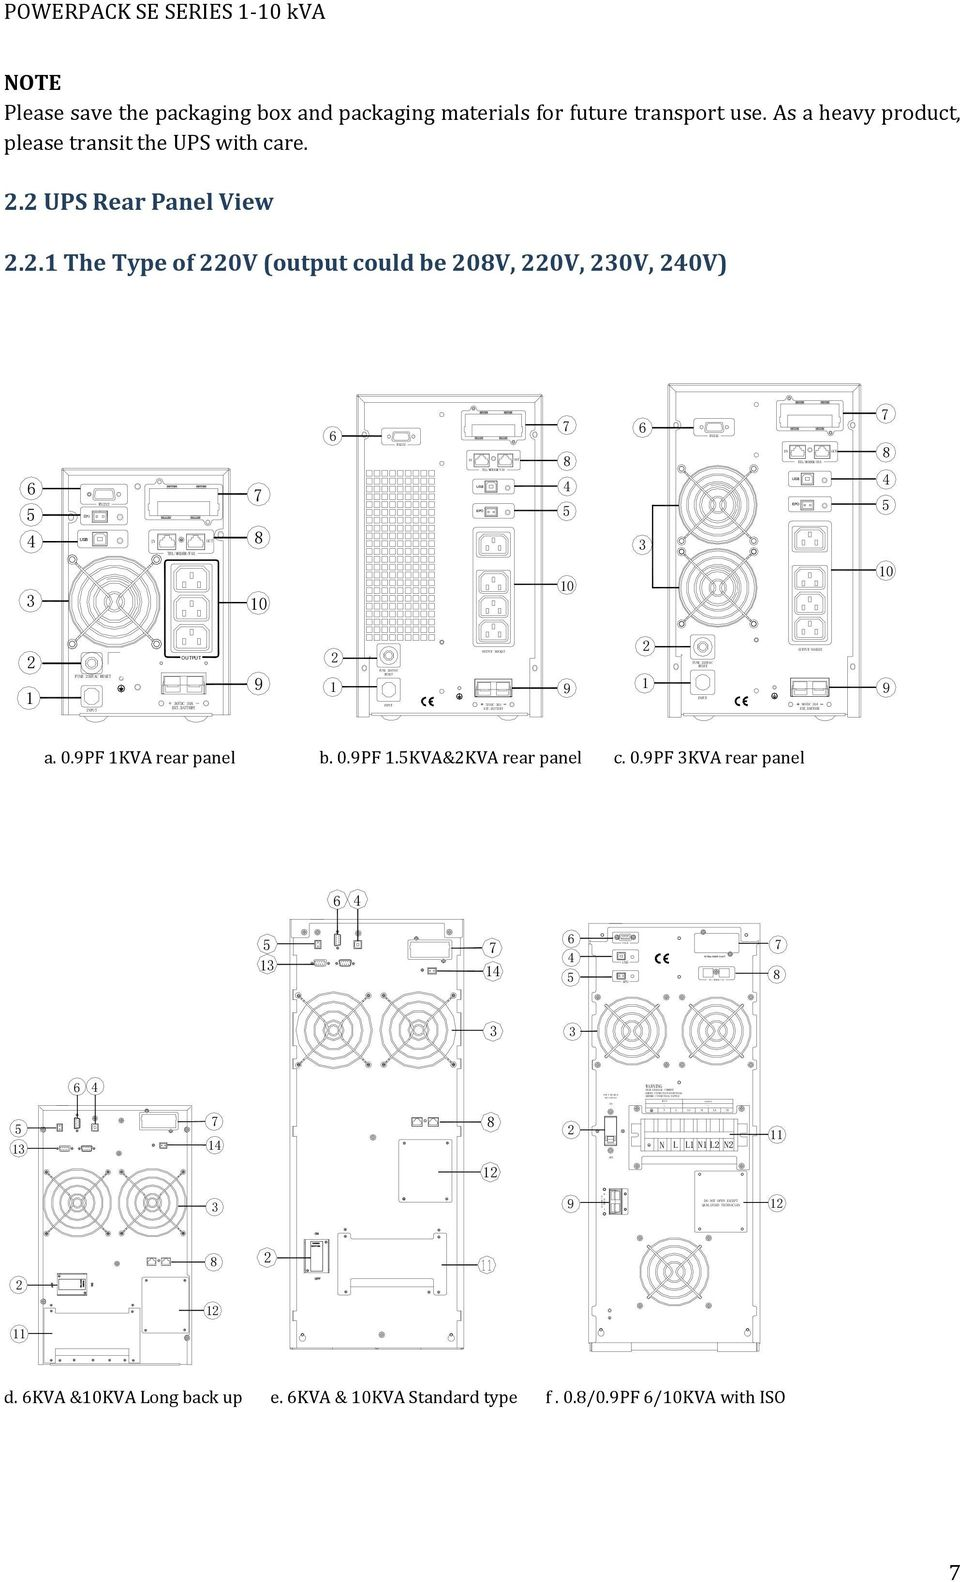 User Manual Powerpack Se Series 1 10 Kva Pdf Riello Ups Circuit Diagram 2 Rear Panel View 221 The Type Of 220v Output Could Be